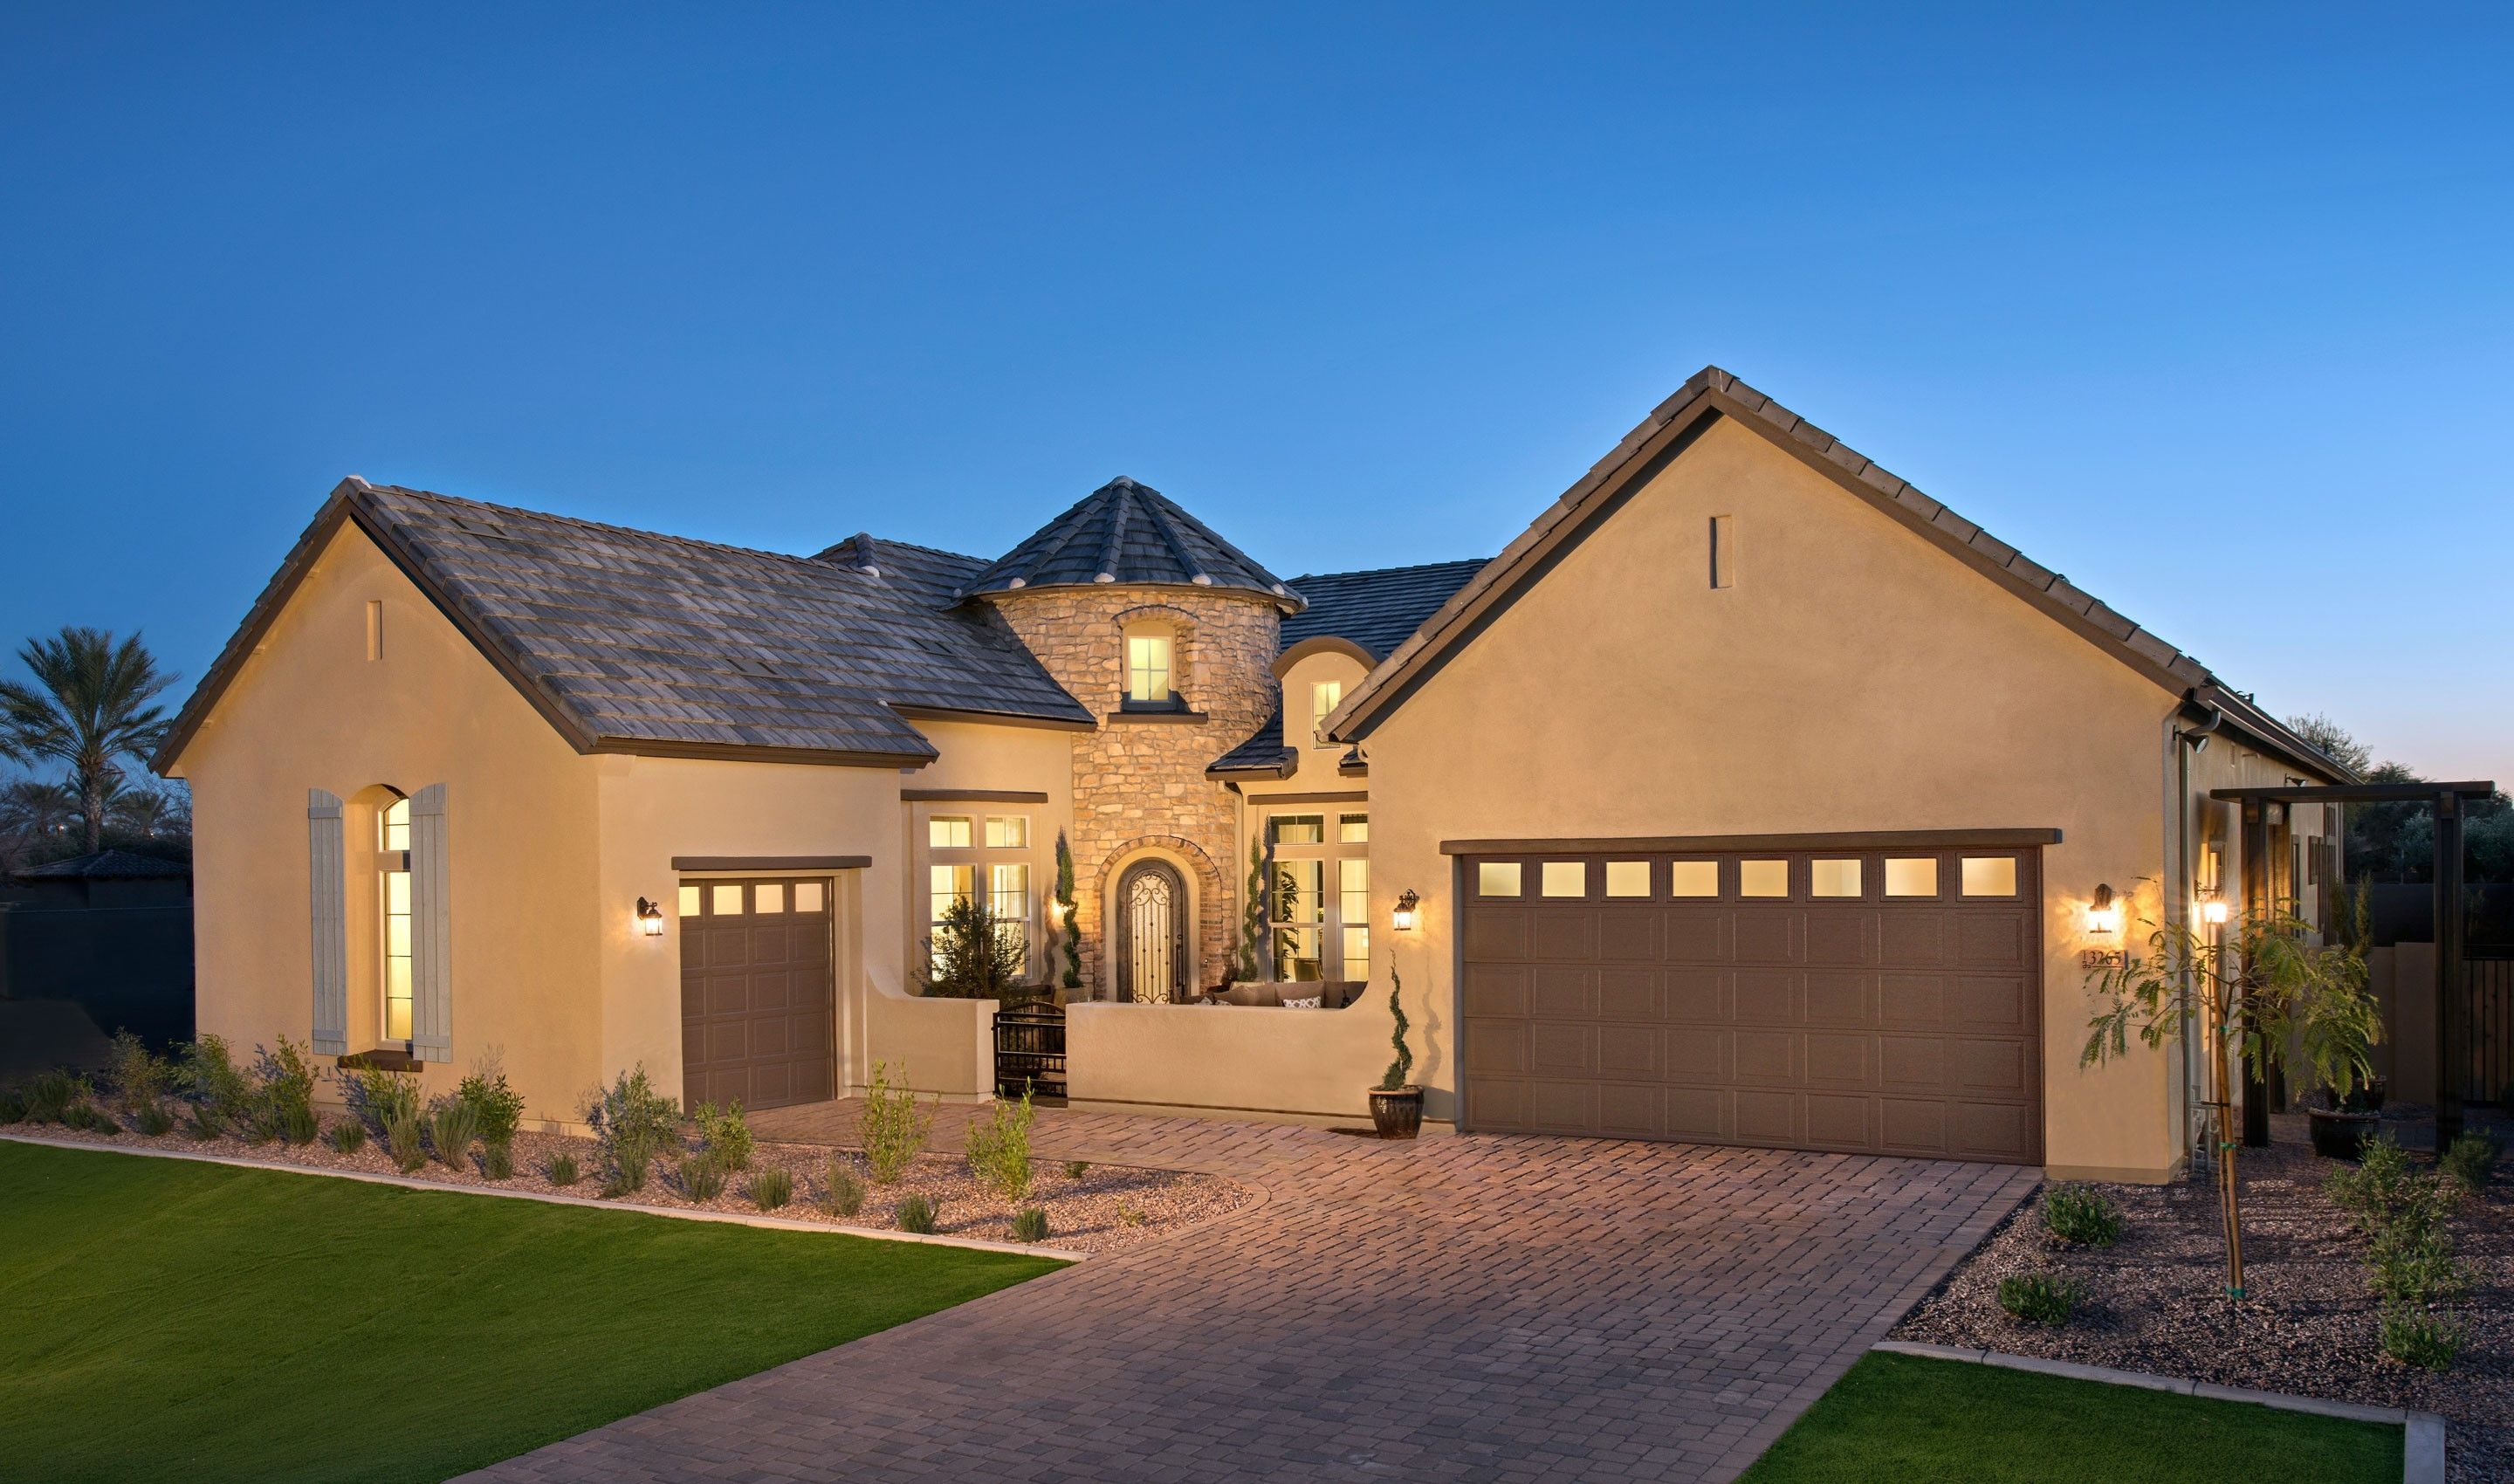 Single Family for Sale at Plymouth 3298 East Indigo Bay Court, Homesite 5 Gilbert, Arizona 85234 United States